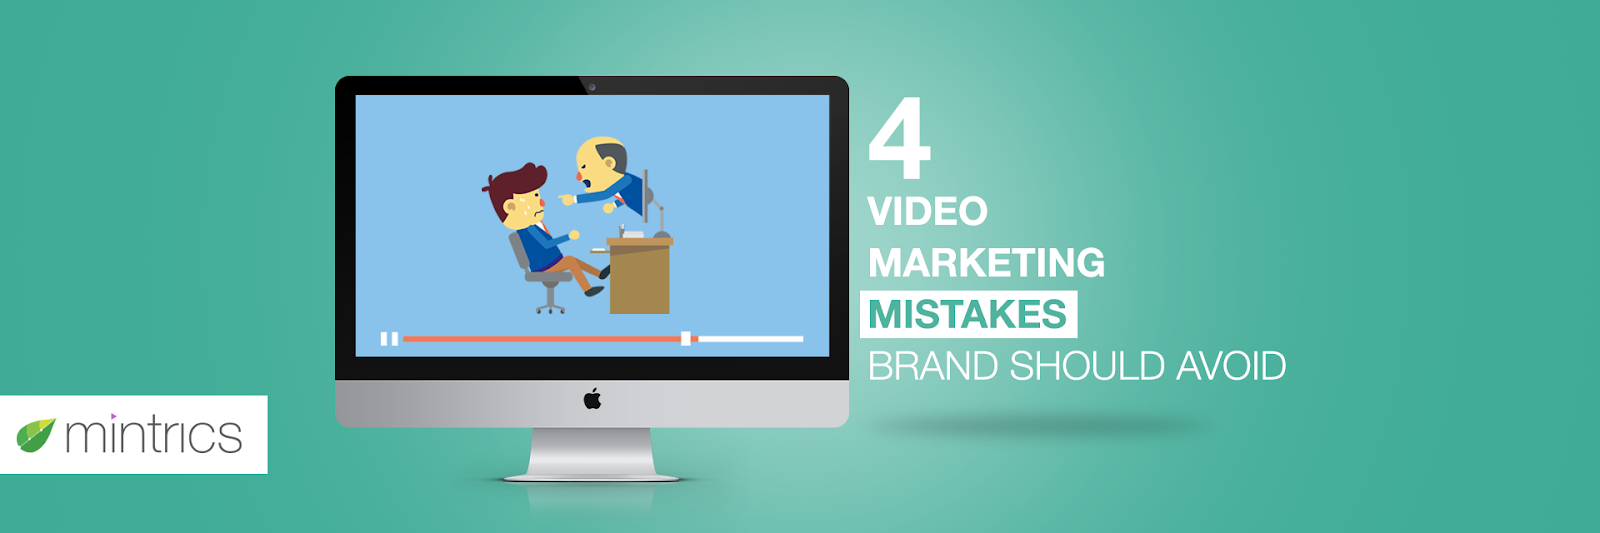 video marketing mistakes to avoid